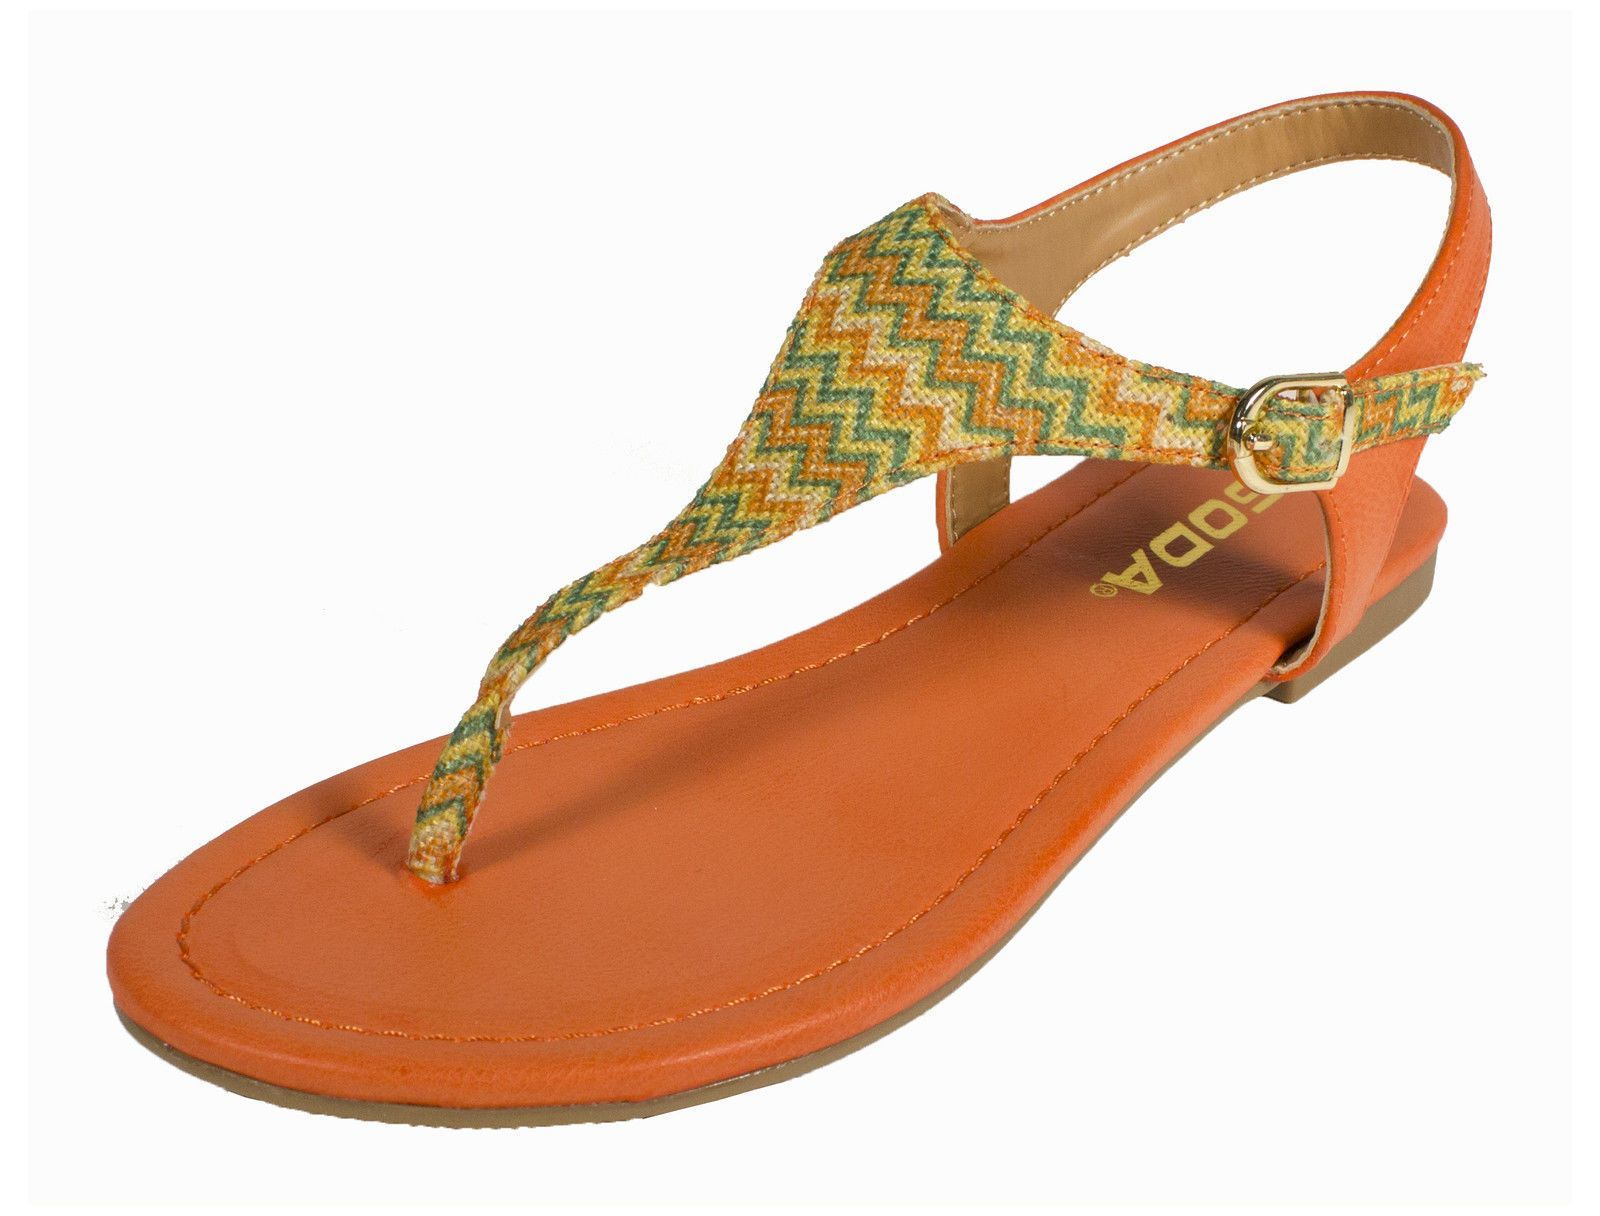 aaf0c73418490 Soda Woven T-Strap Thong Flat Sandal Orange Leather Multi Color T-Strap